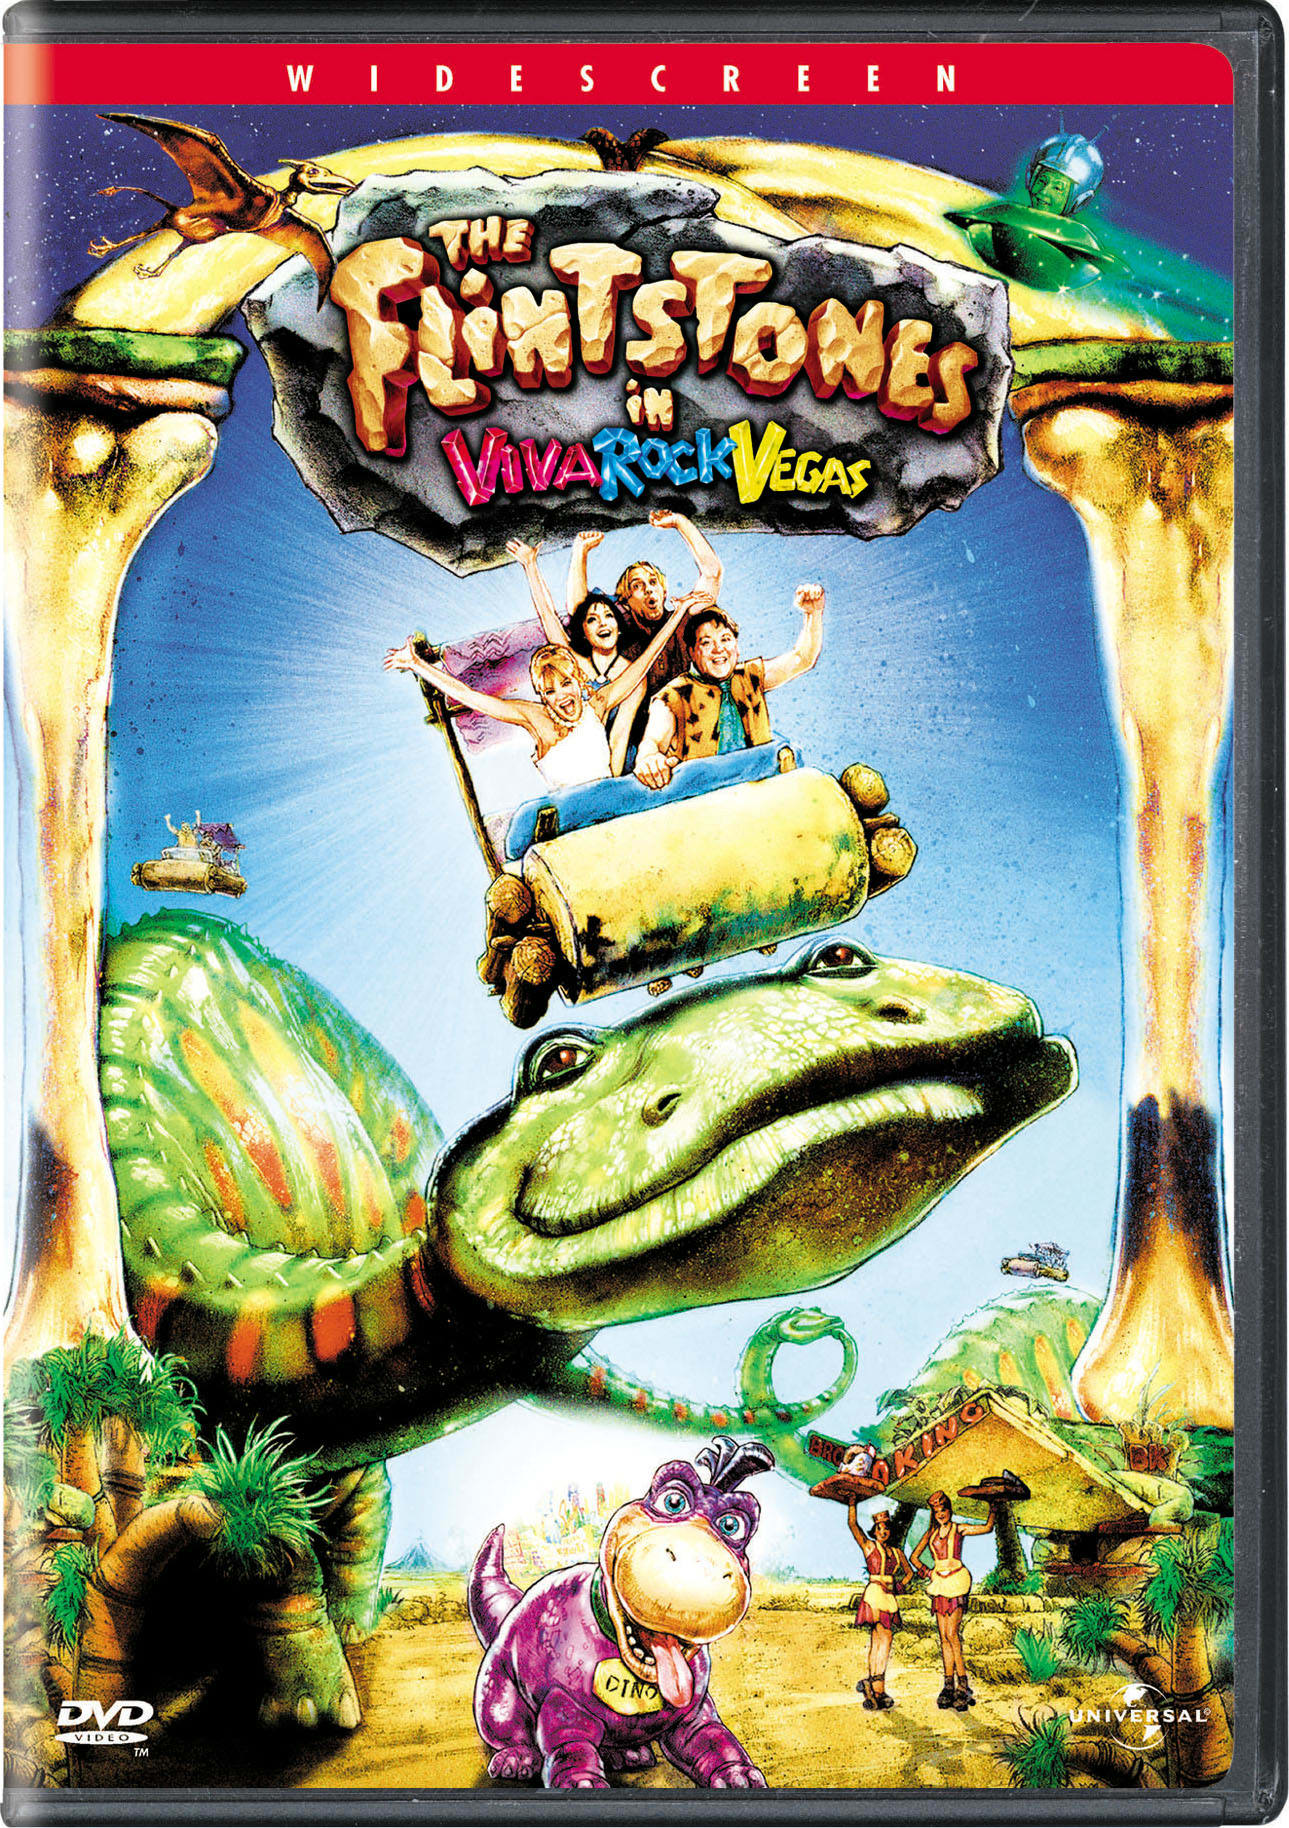 The Flintstones in Viva Rock Vegas (Widescreen) [DVD]